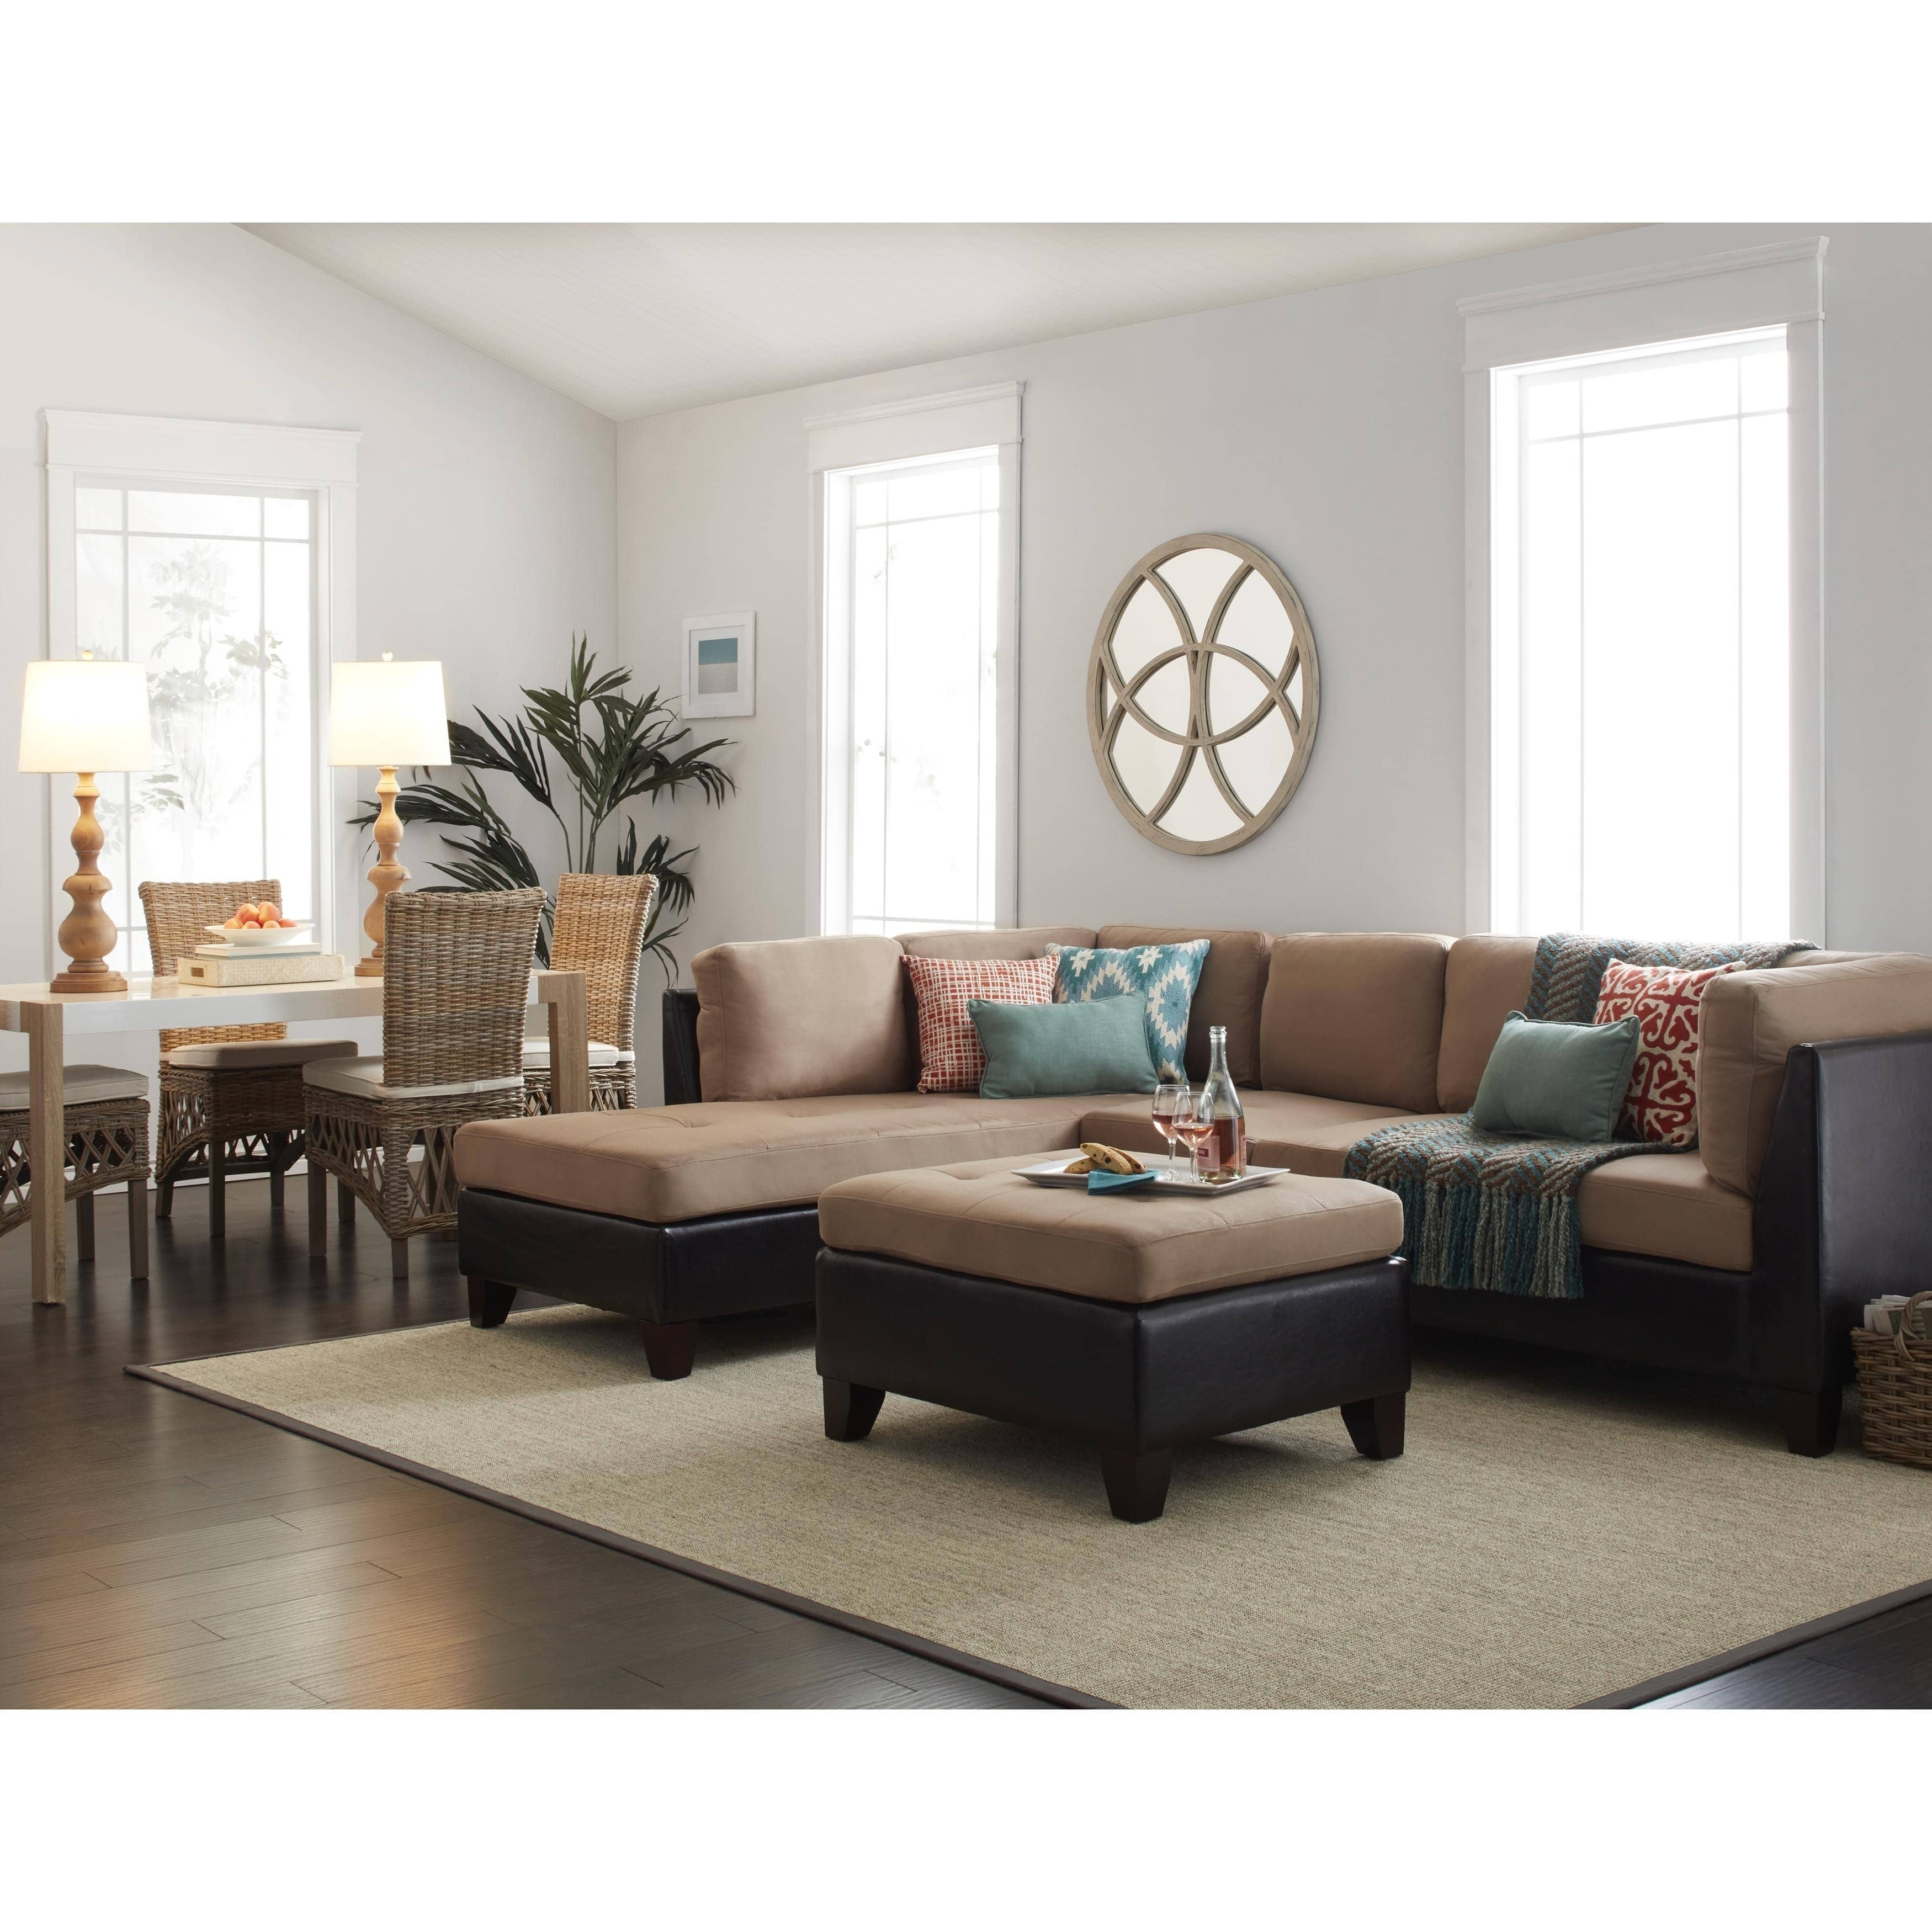 Abbyson Charlotte Beige Sectional Sofa And Ottoman – Free Shipping Within Charlotte Sectional Sofas (View 8 of 10)